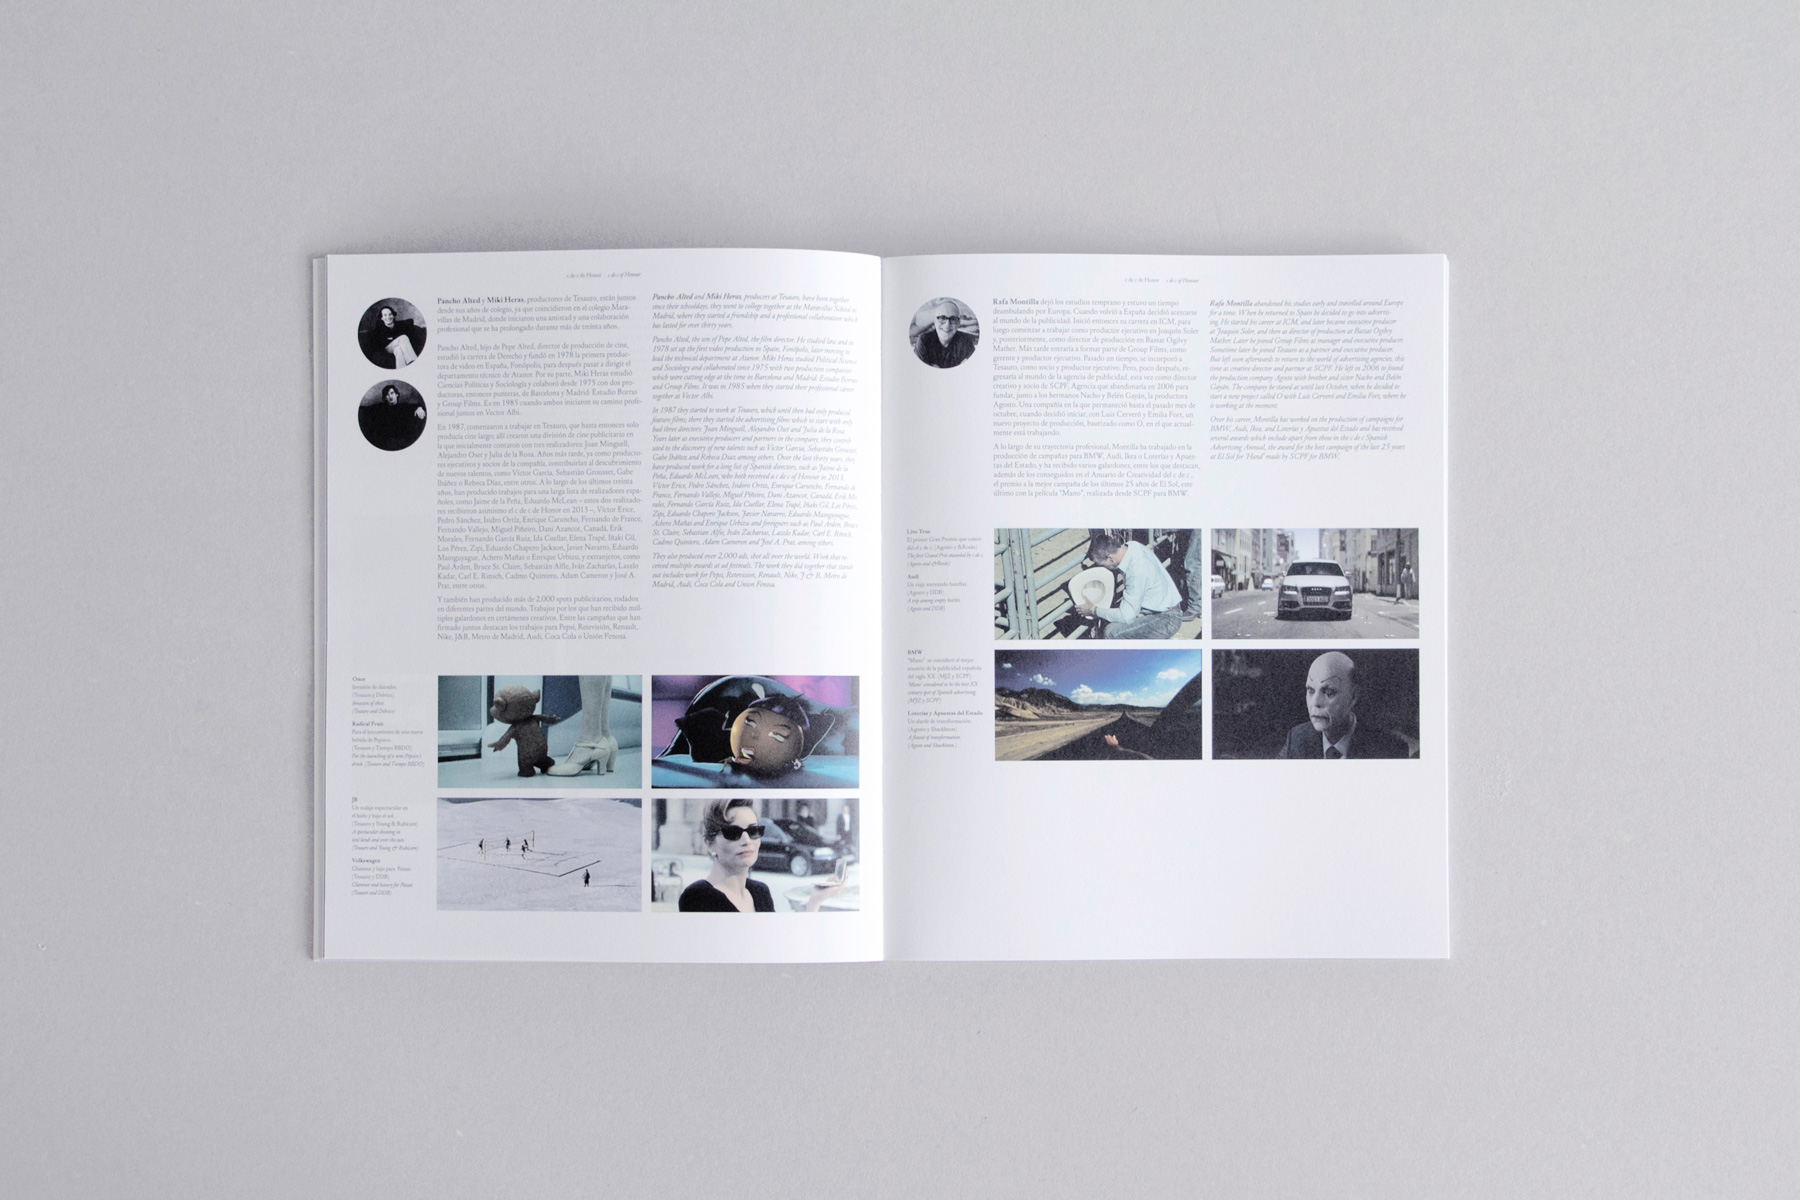 FOLCH - CdC Spanish Annual